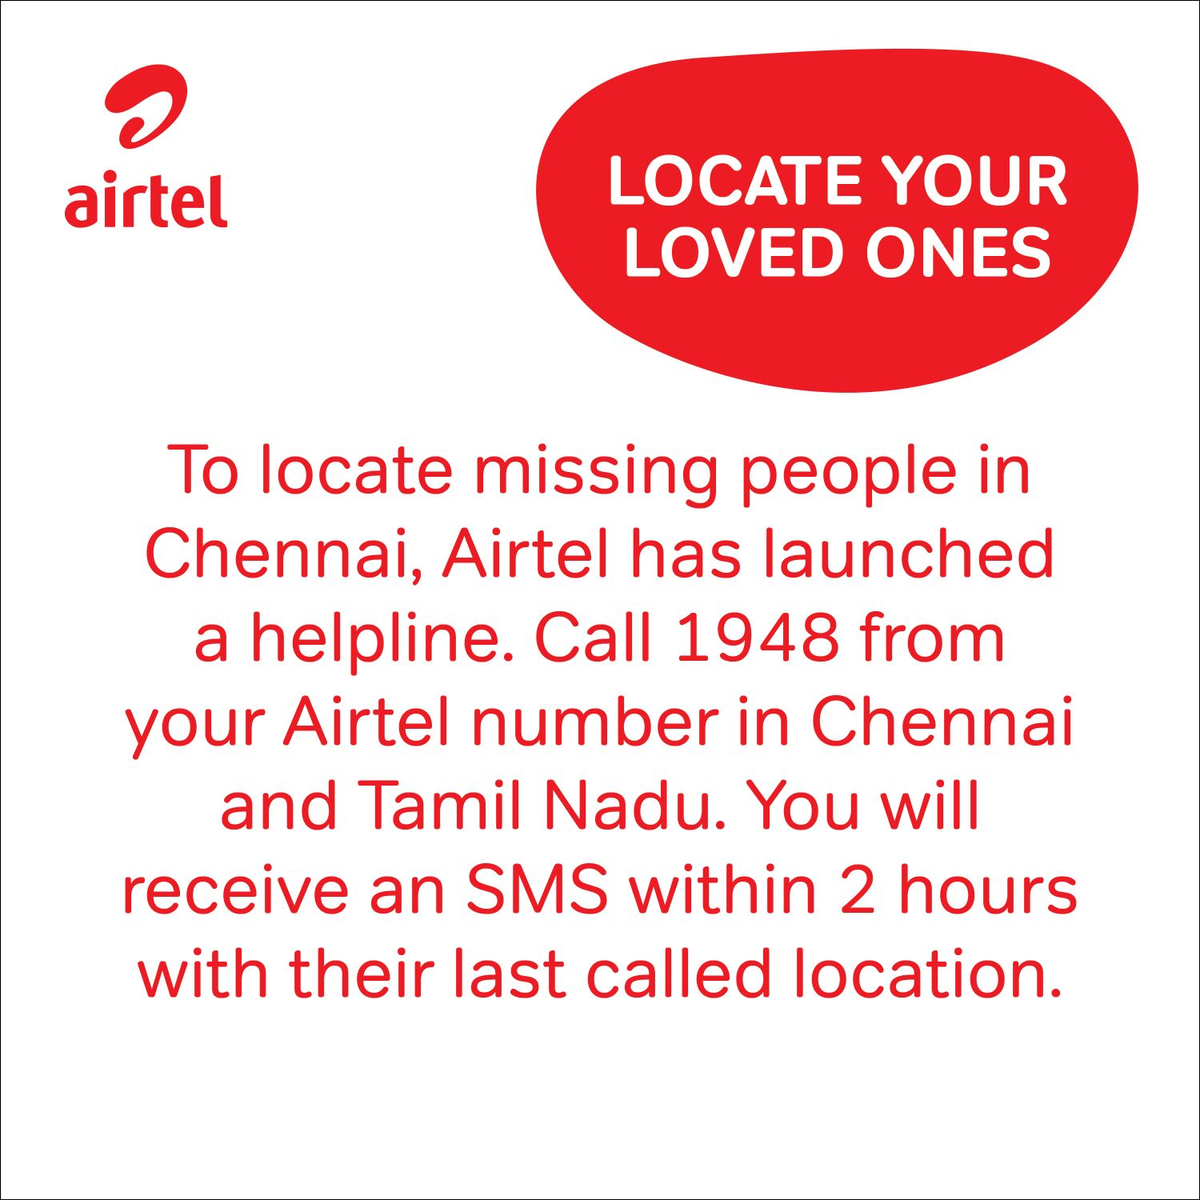 Locate your loved ones. Call 1948 from your Airtel number in Chennai & TN. #ChennaiRainsHelp @TelecomTalk https://t.co/x16NNAB68W